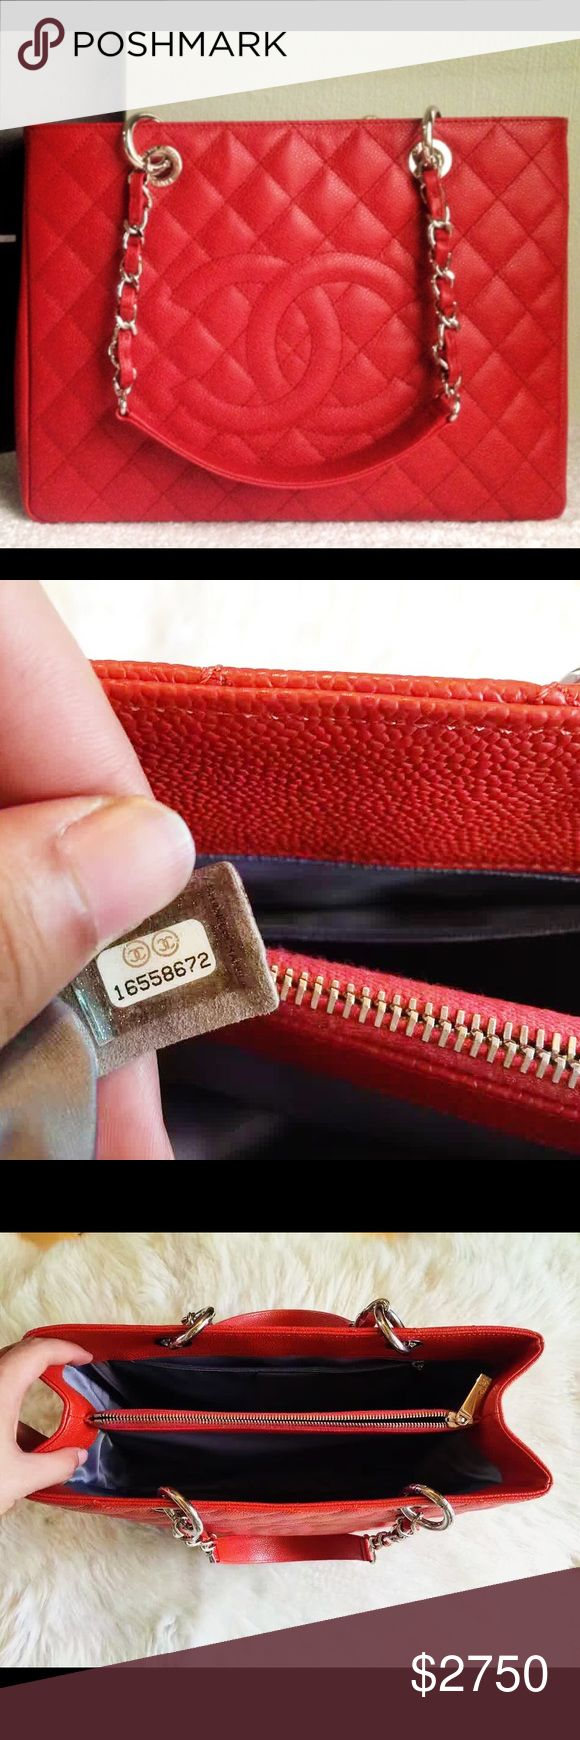 Auth Chanel GST Grand Shopping Tote Cherry Red GHW PRISTINE LIKE NEW WITH MINIMAL SIGNS OF WEAR. Comes with original receipt and authenticity card. GUARANTEED 100% AUTHENTIC OR 10X YOUR MONEY BACK!! PHOTOS ARE TAKEN OF THE EXACT SAME ITEM YOU WILL RECEIVE! WHAT YOU SEE IS WHAT YOU GET*** PLEASE VISIT OUR WEBSITE AT WWW.AUTHENTICLUXURIESTW.COM or email me at authenticluxuries11@gmail.com for more detailed photos =). Chanel Bags Totes